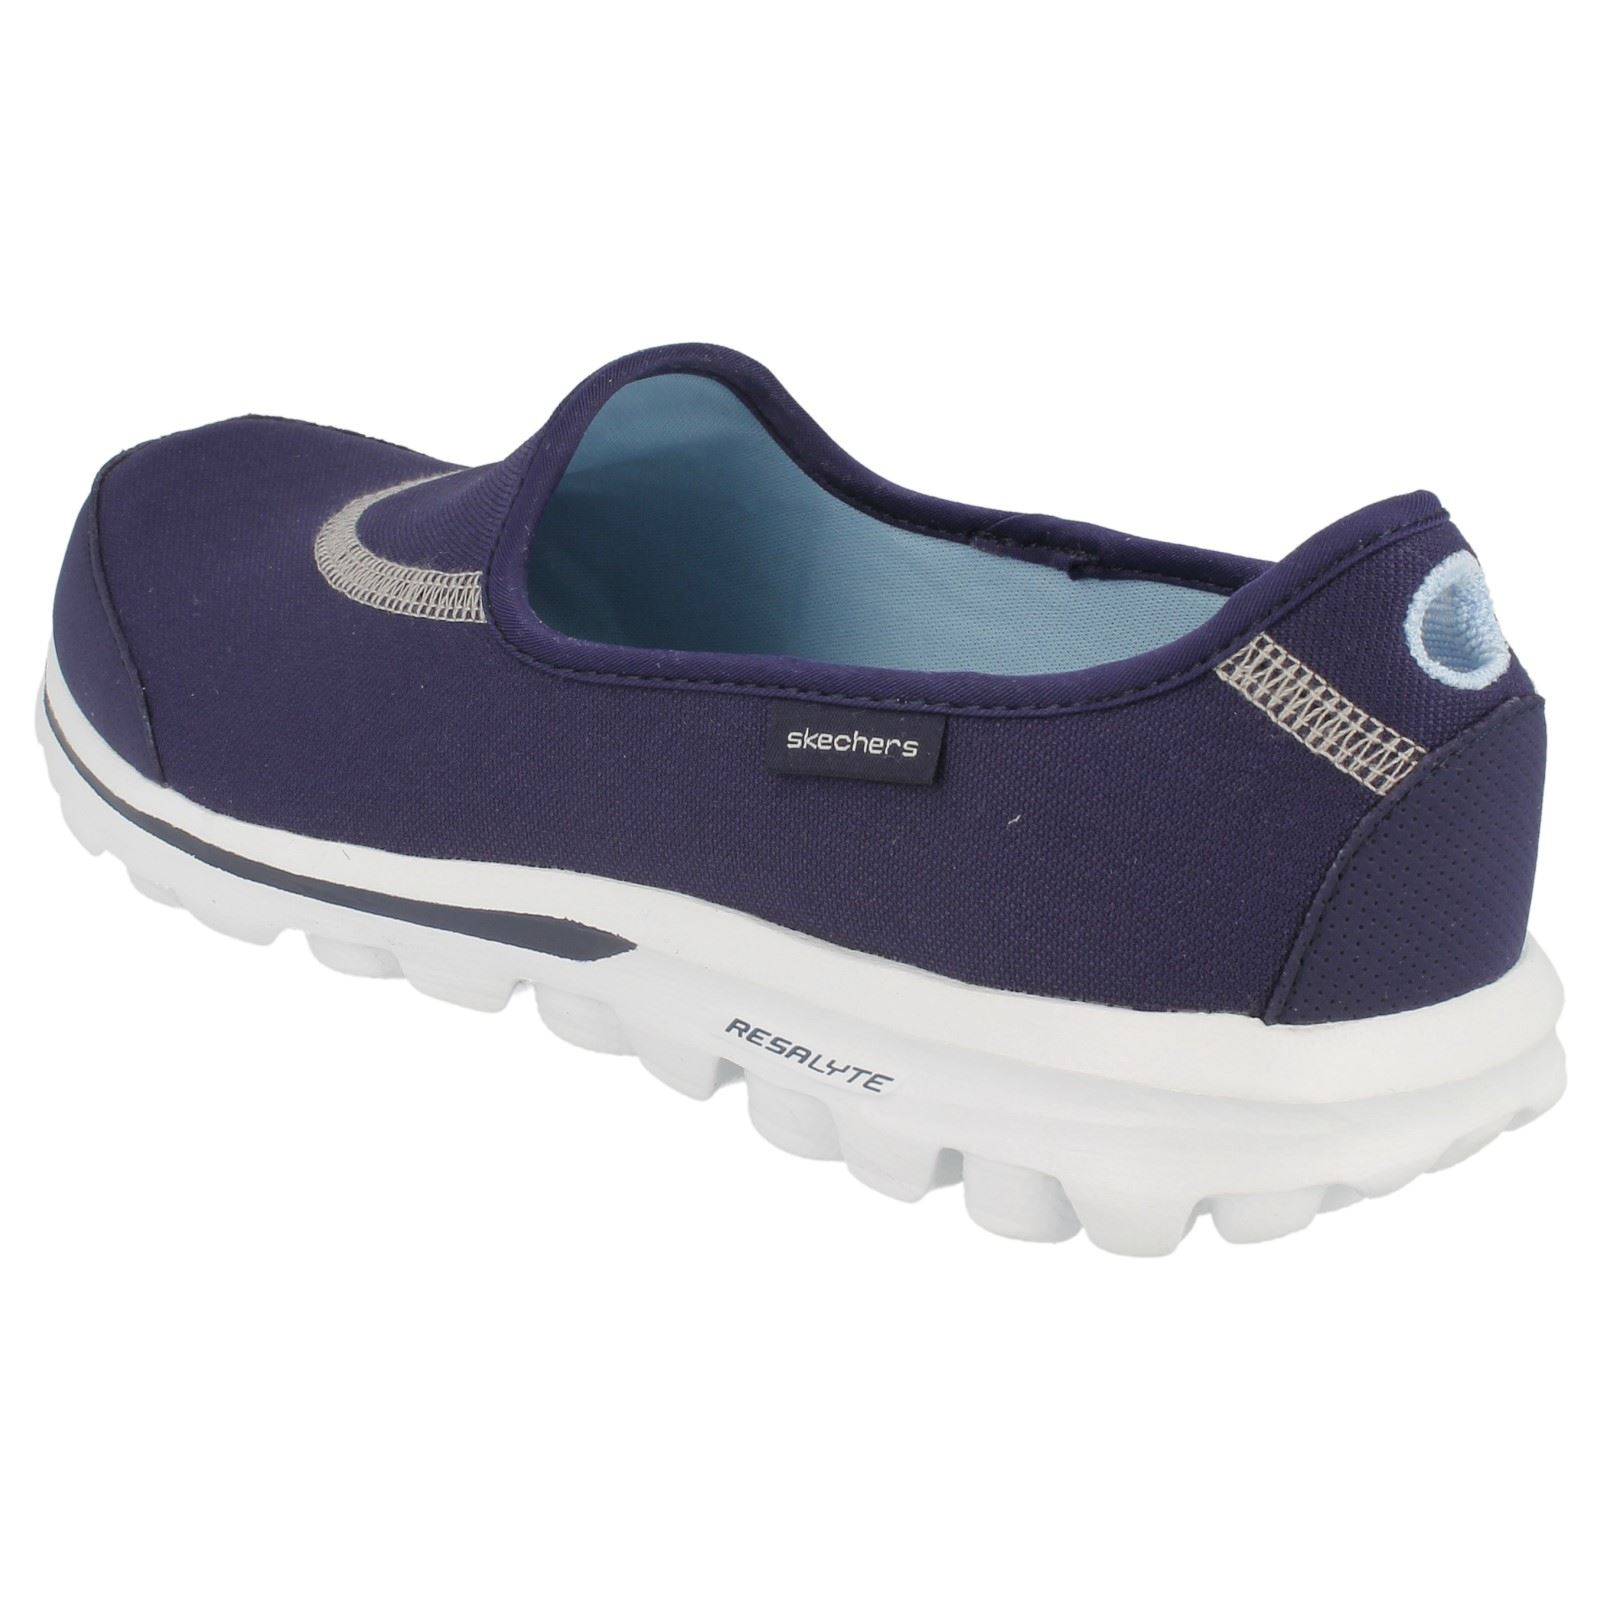 ladies skechers walking shoes 39 go walk 39 ebay. Black Bedroom Furniture Sets. Home Design Ideas